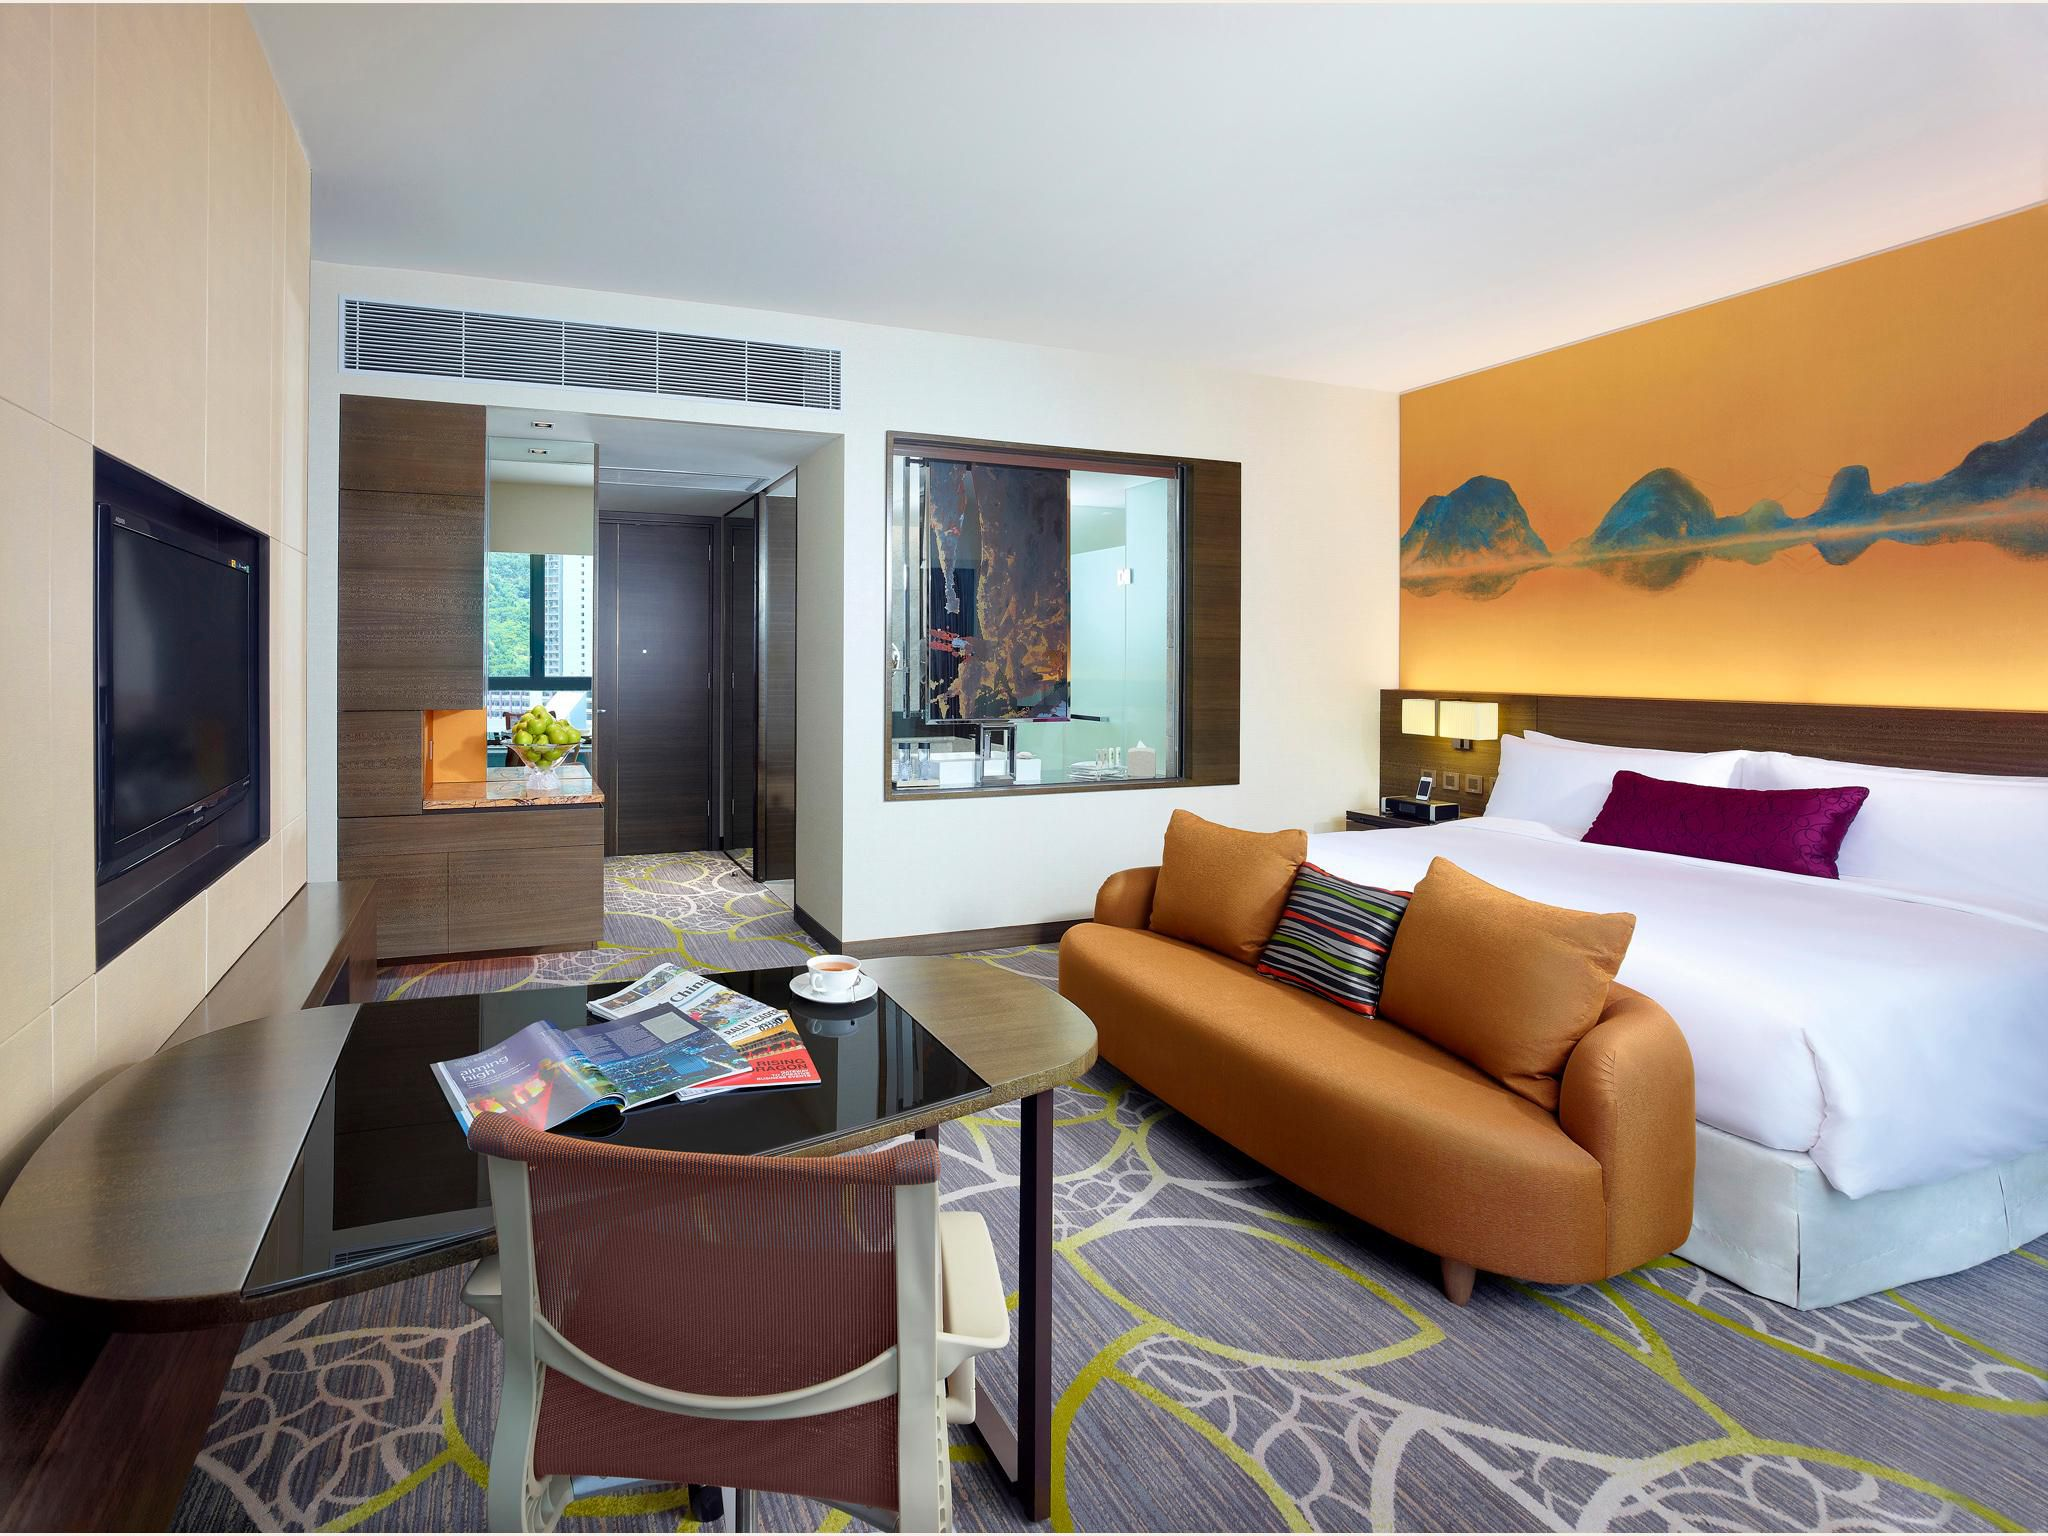 Business hotel in hong kong east hotel - Ihg Crowneplaza Components Photogallery Roomphotos Primary